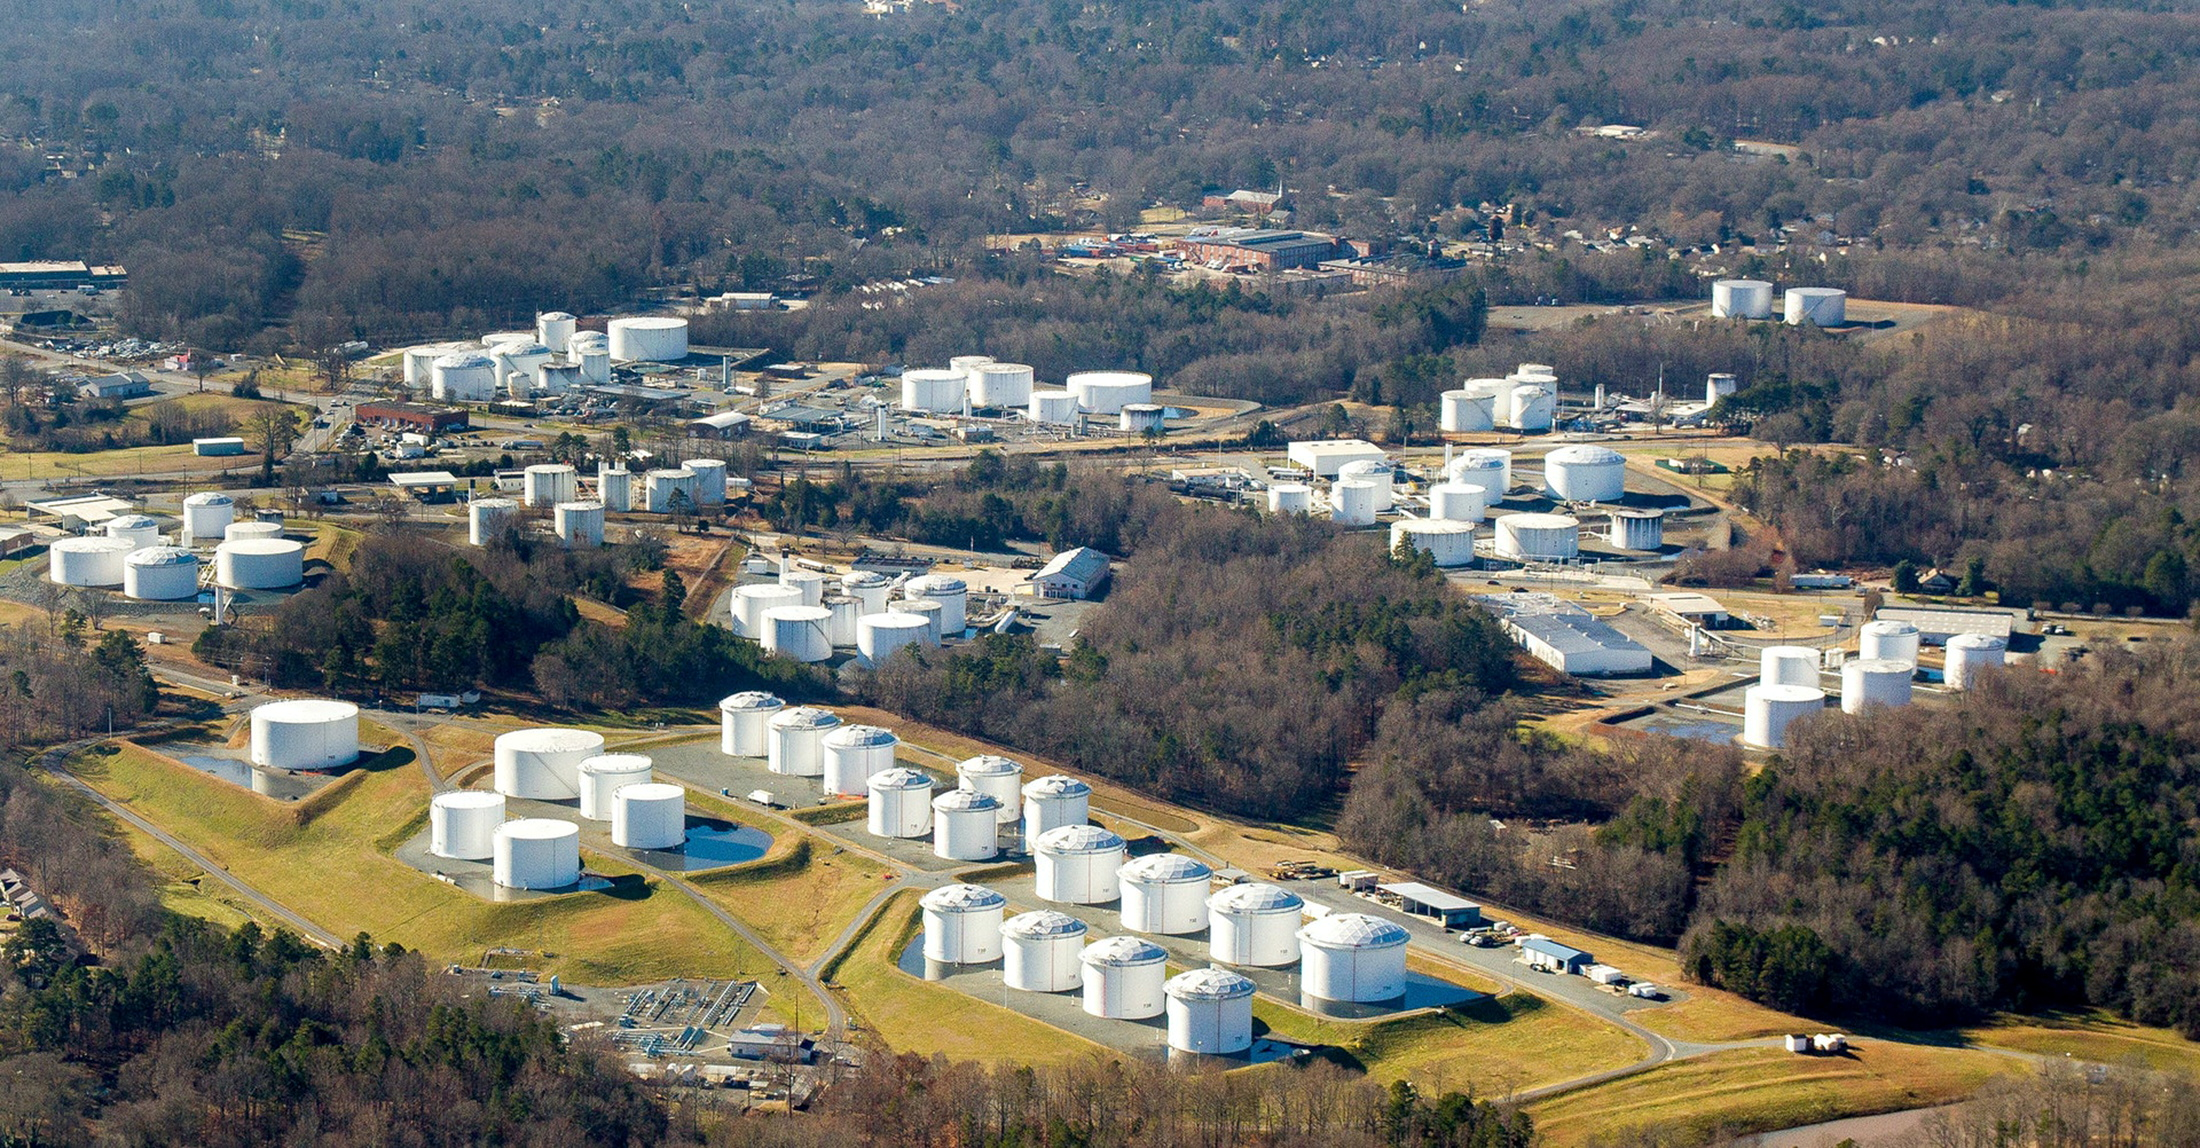 Holding tanks are seen at Colonial Pipeline's Charlotte Tank Farm in Charlotte, North Carolina, U.S. an undated photograph.  Colonial Pipeline/Handout via REUTERS